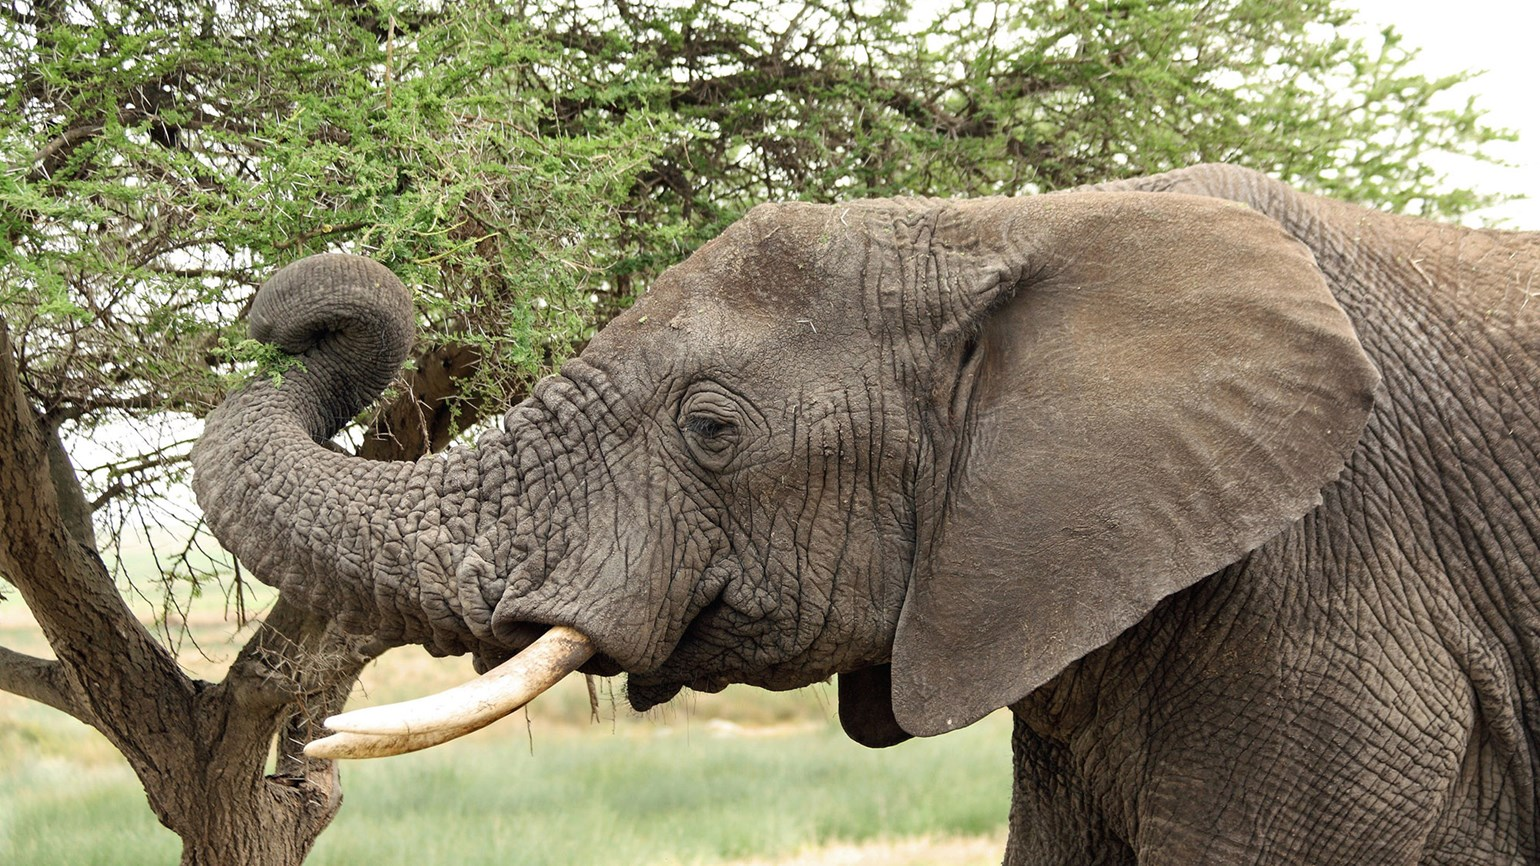 Tour operator doing its part to aid conservation effort in Botswana